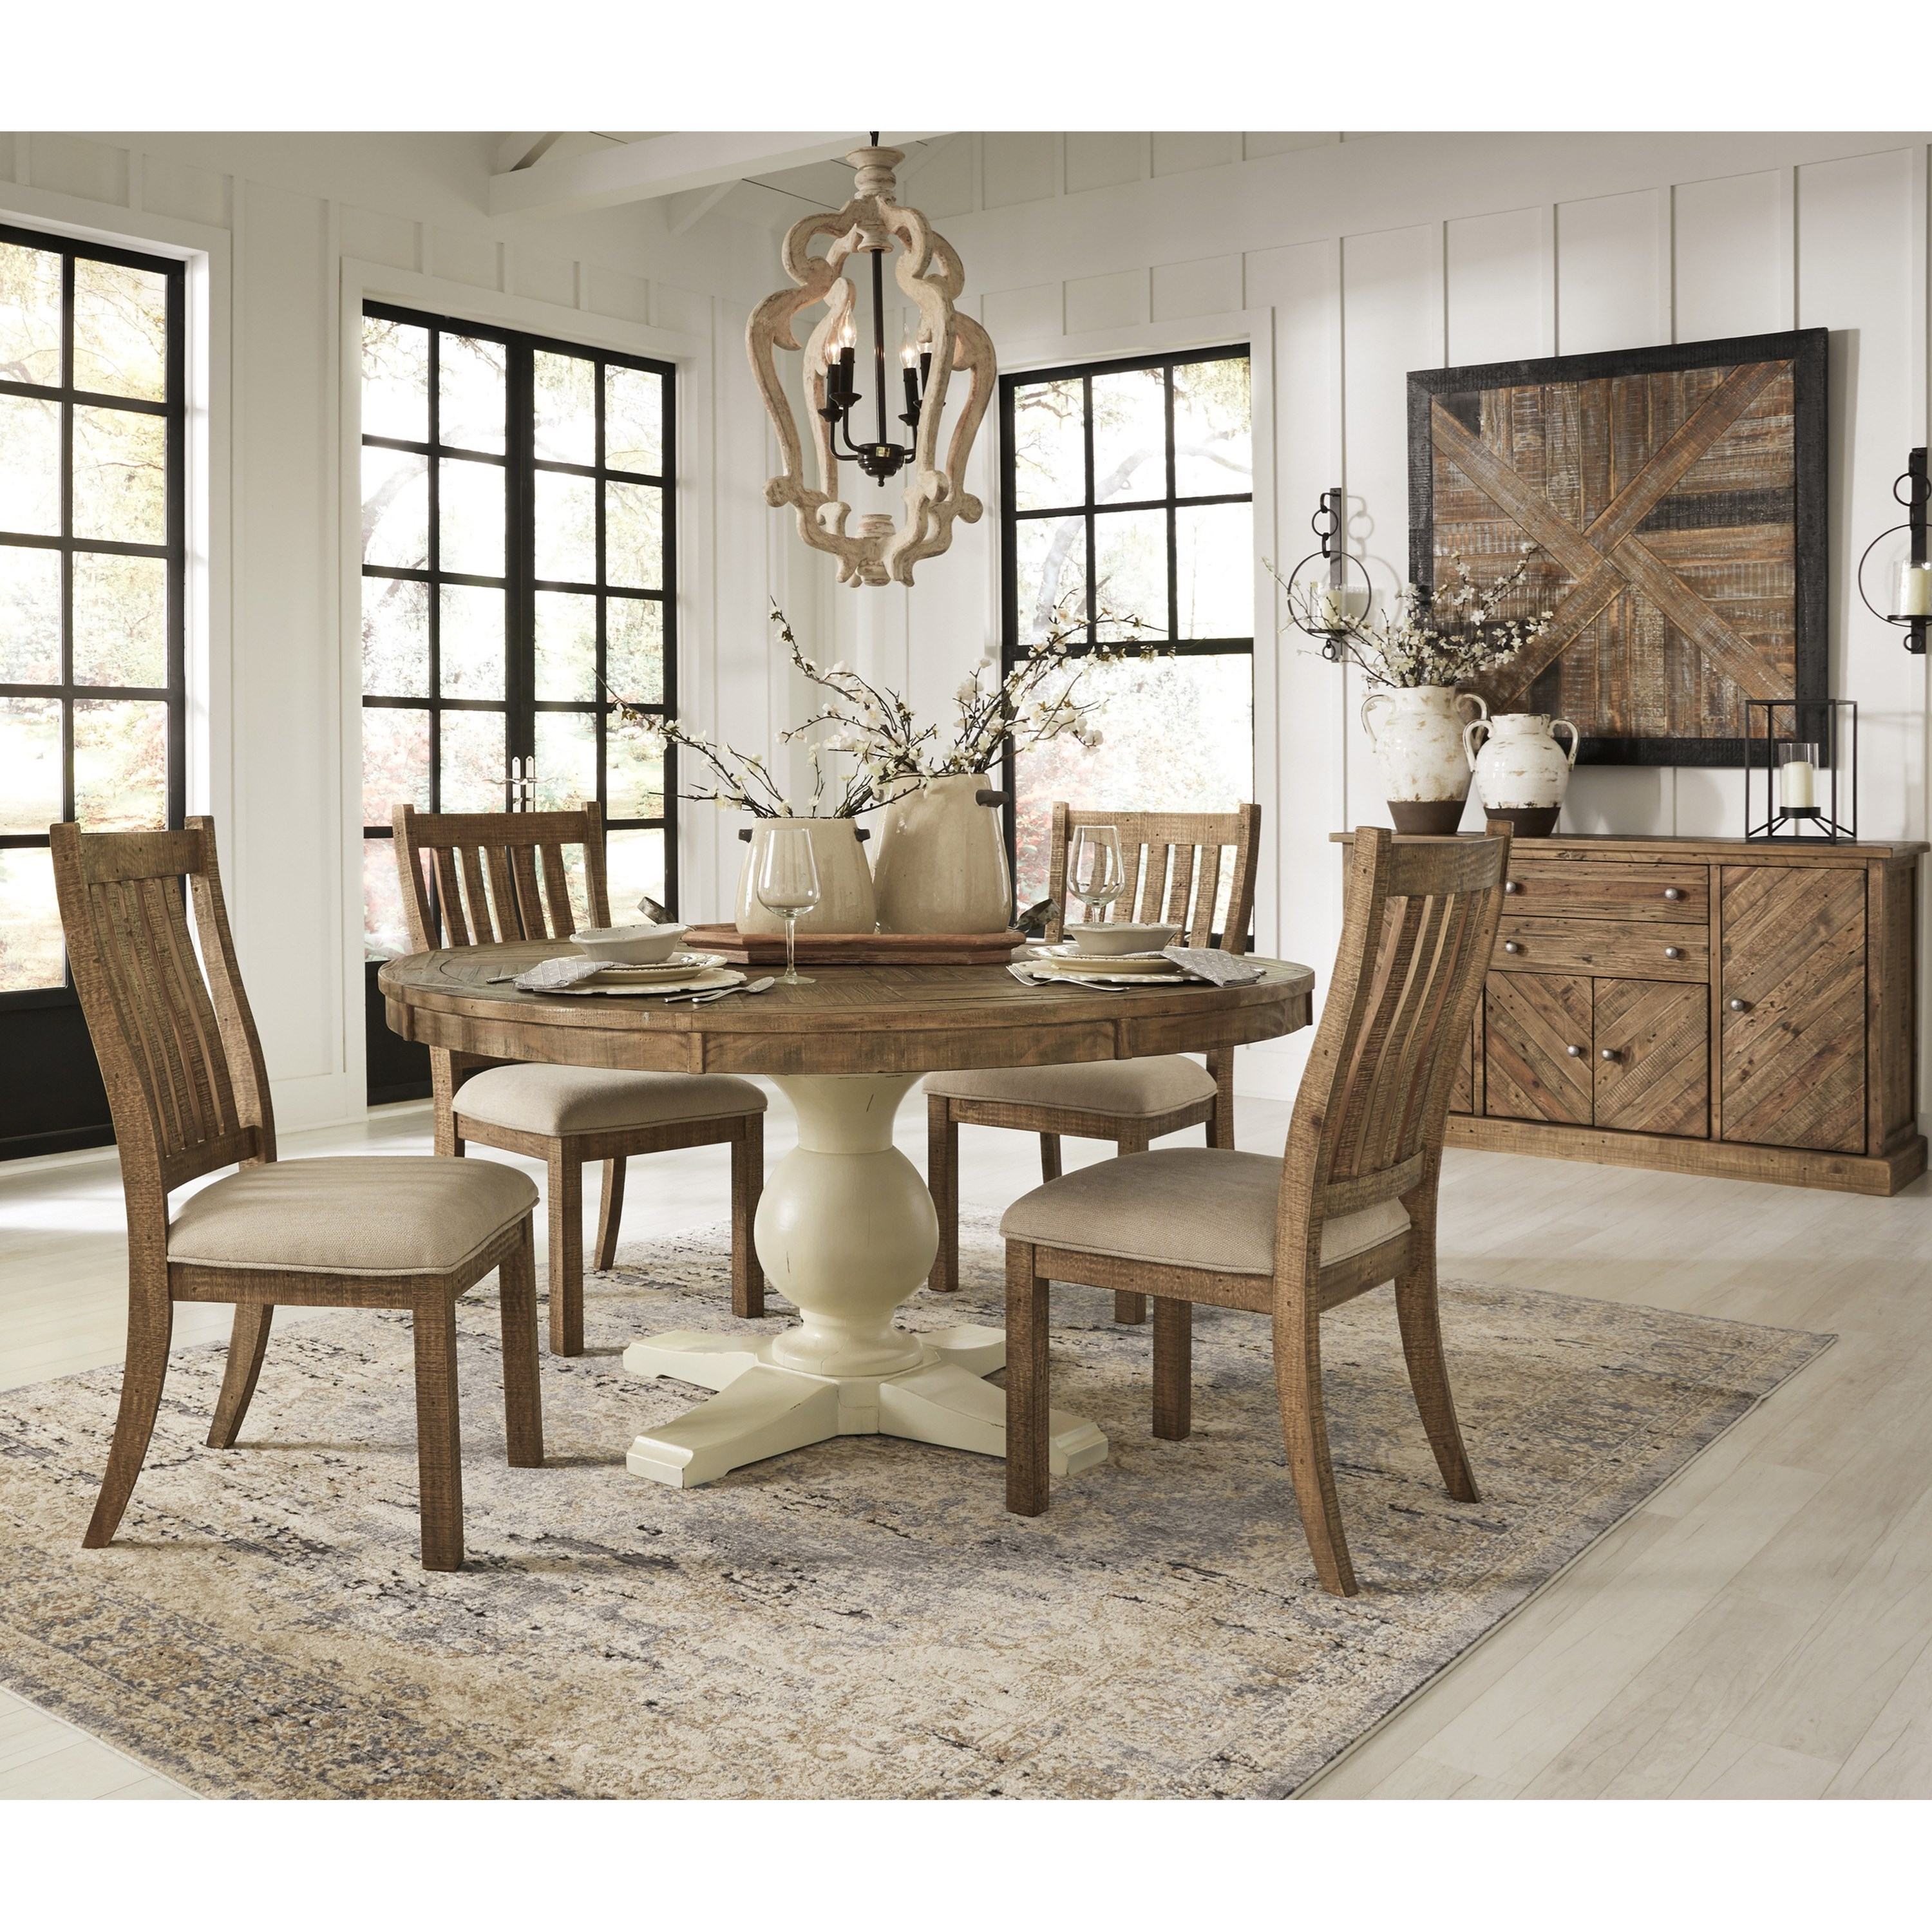 Grindleburg Casual Dining Room Group by Signature Design by Ashley at Northeast Factory Direct